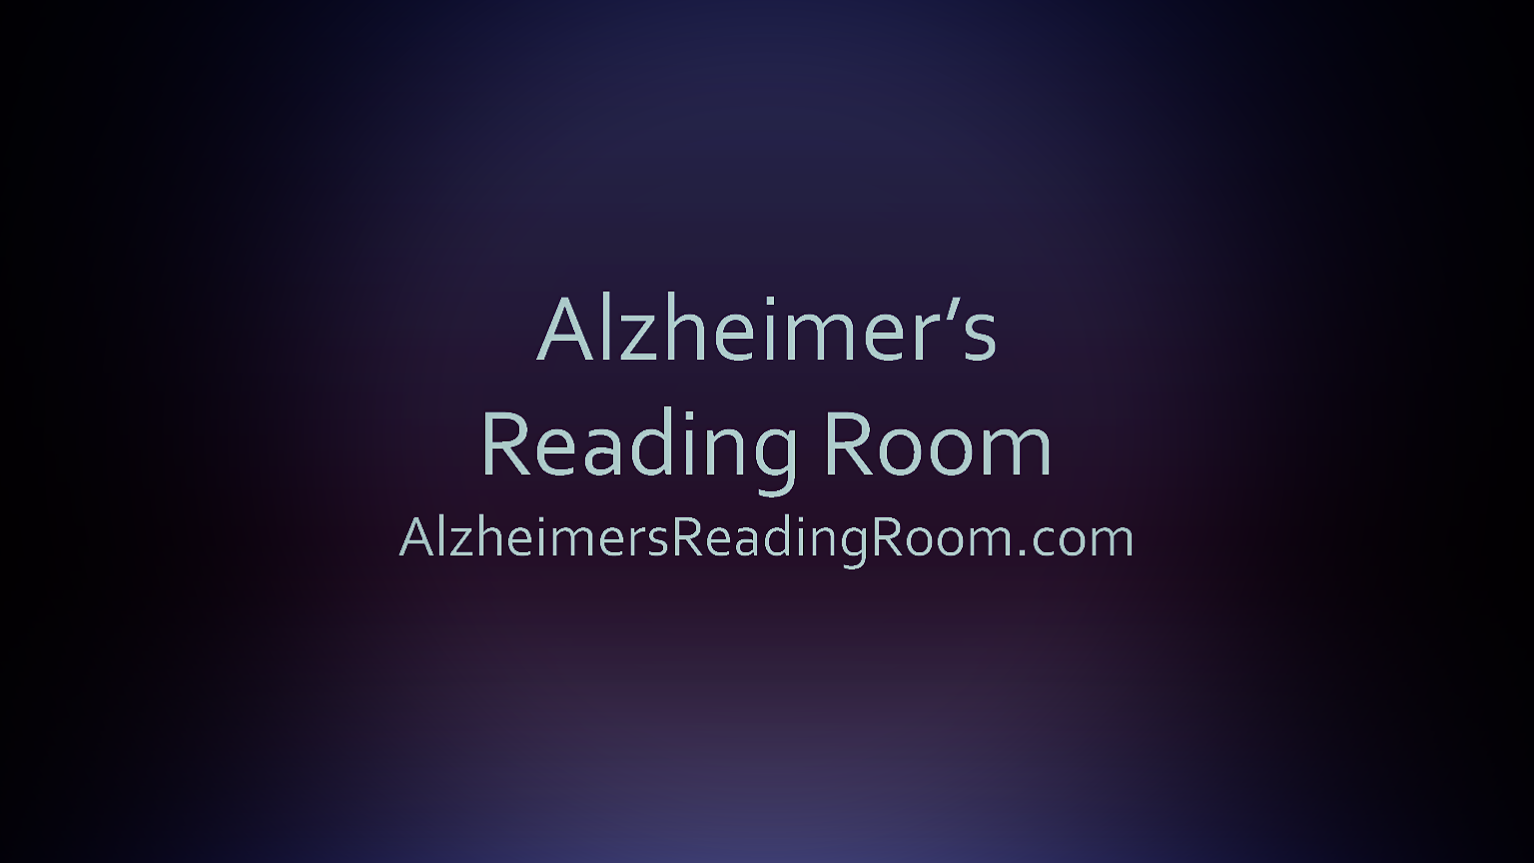 Alzheimer's Readaing Room